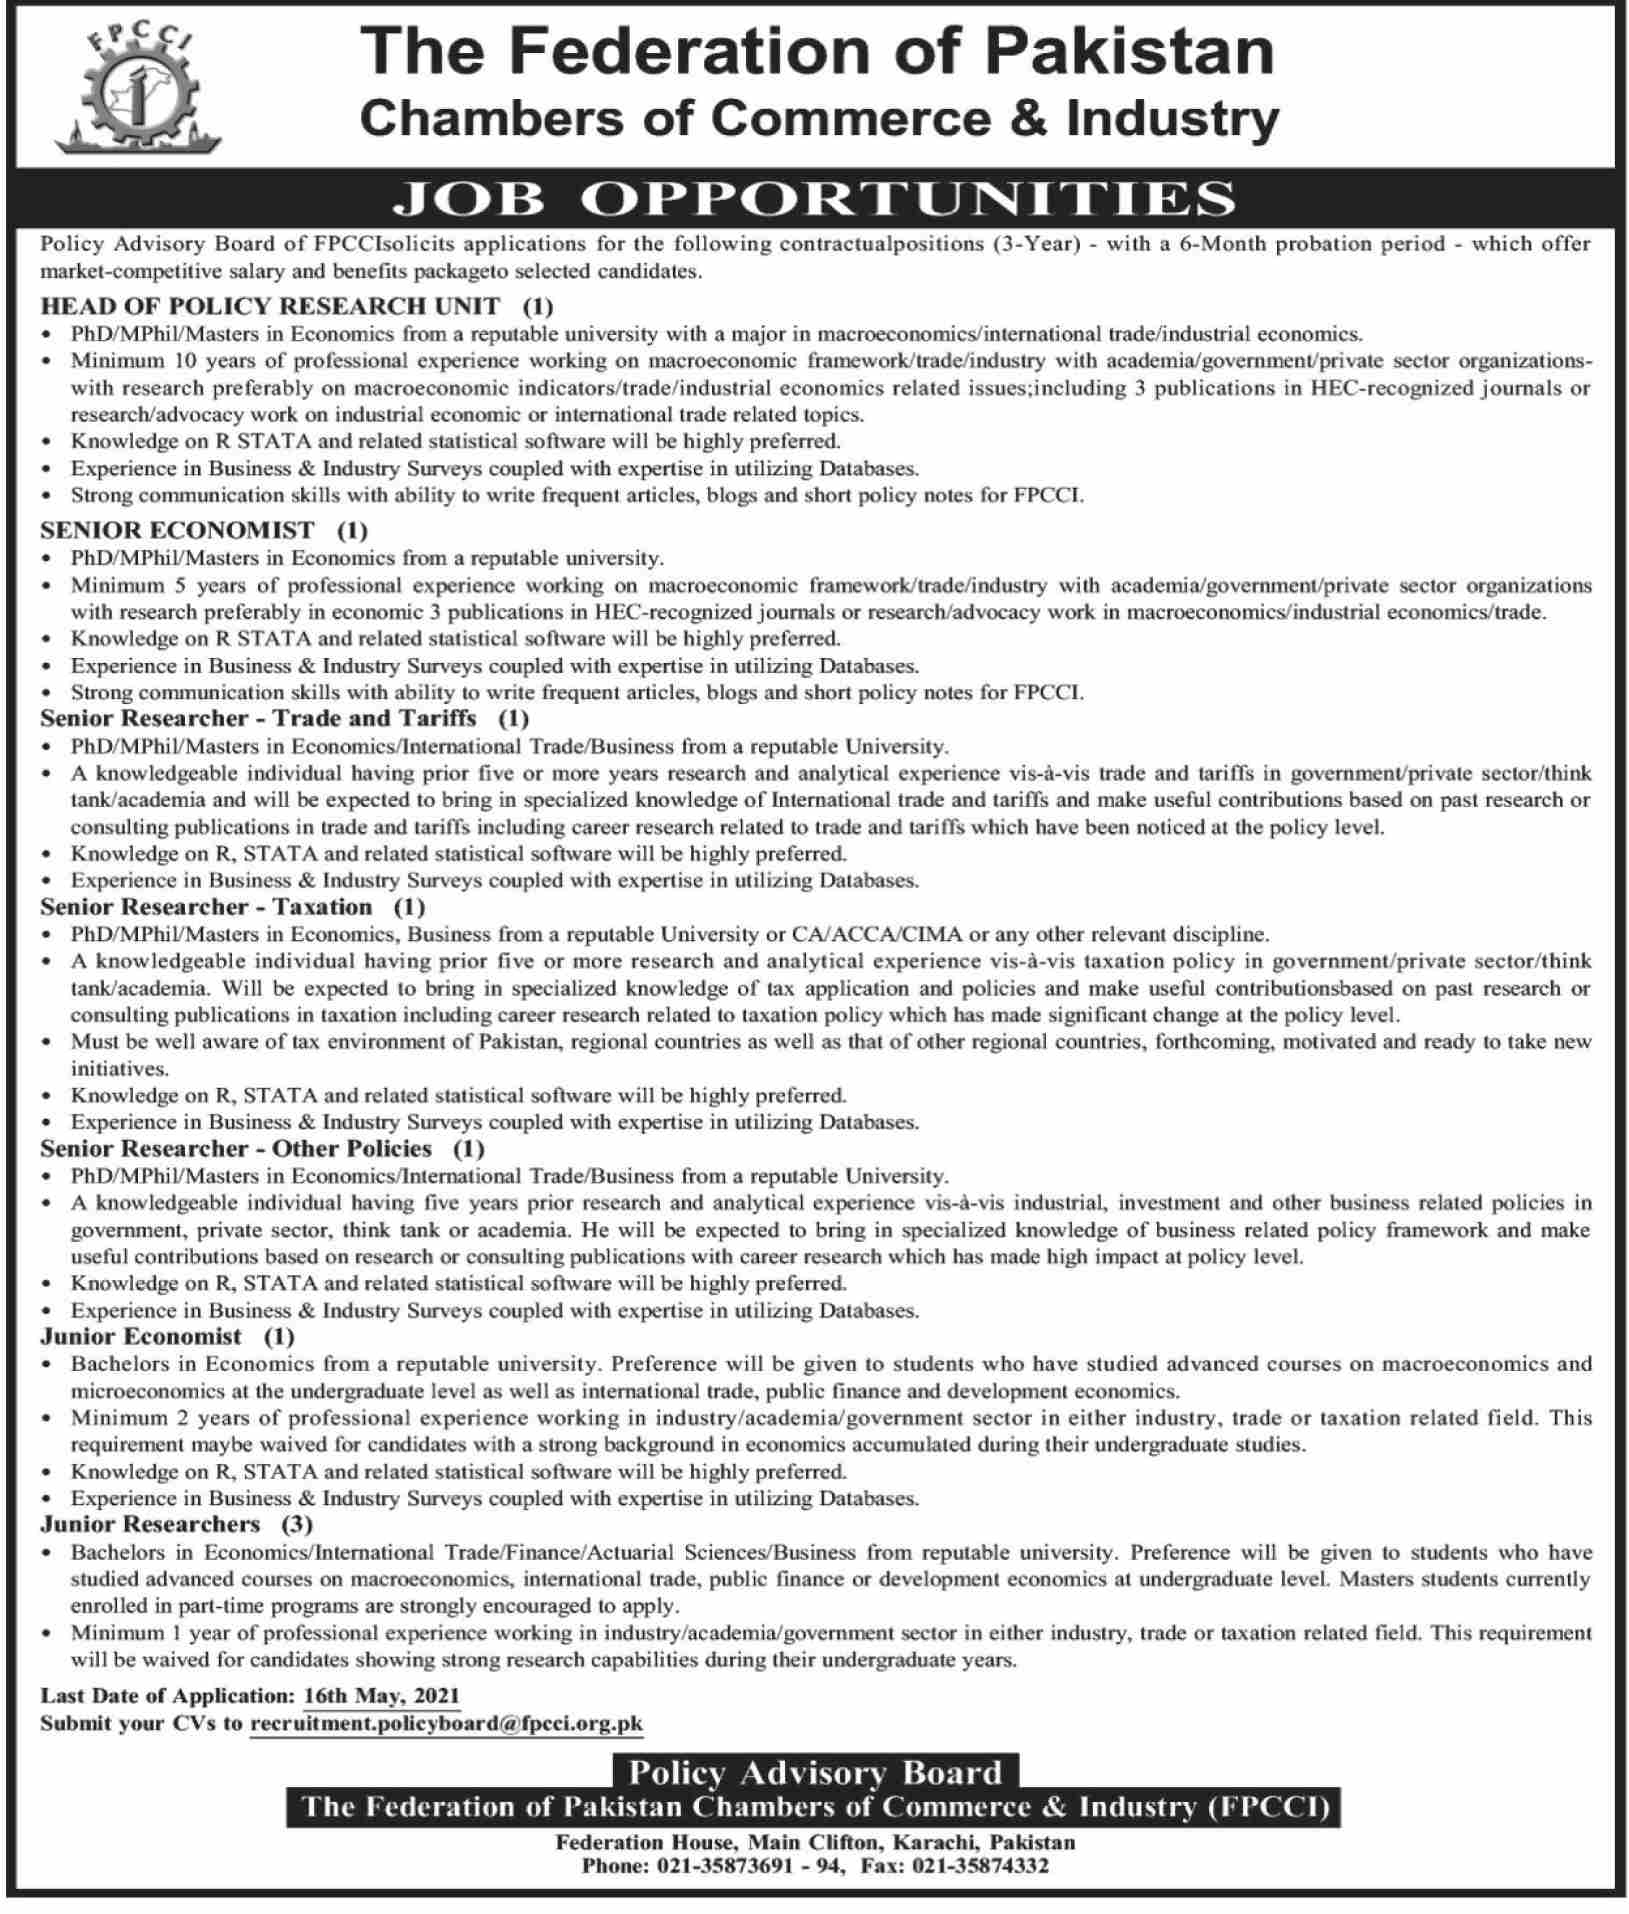 recruitment.policyboard@fpcci.org.pk - Federation of Pakistan Chambers of Commerce & Industry (FPCCI) Jobs 2021 in Pakistan